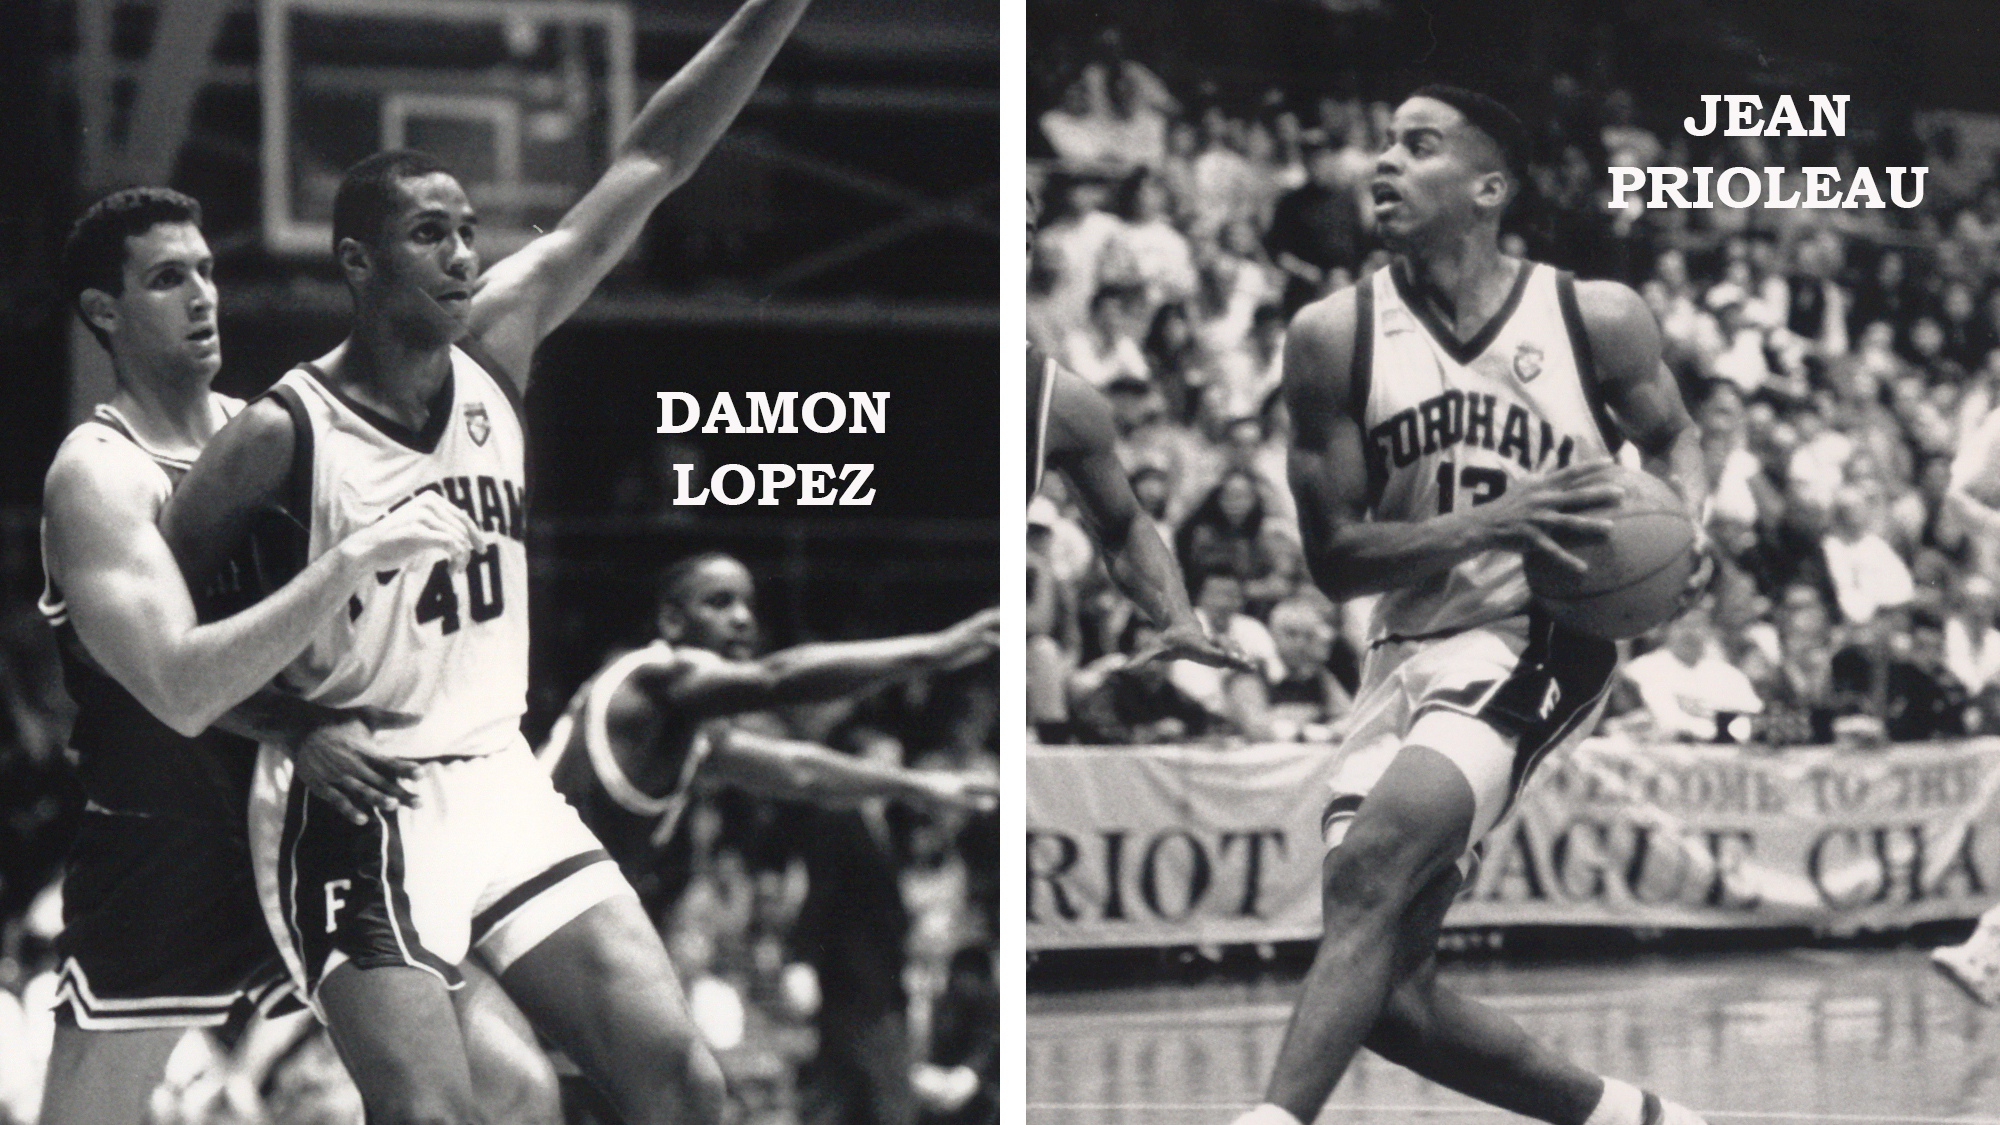 Damon Lopez and Jean Prioleau in action in 1991